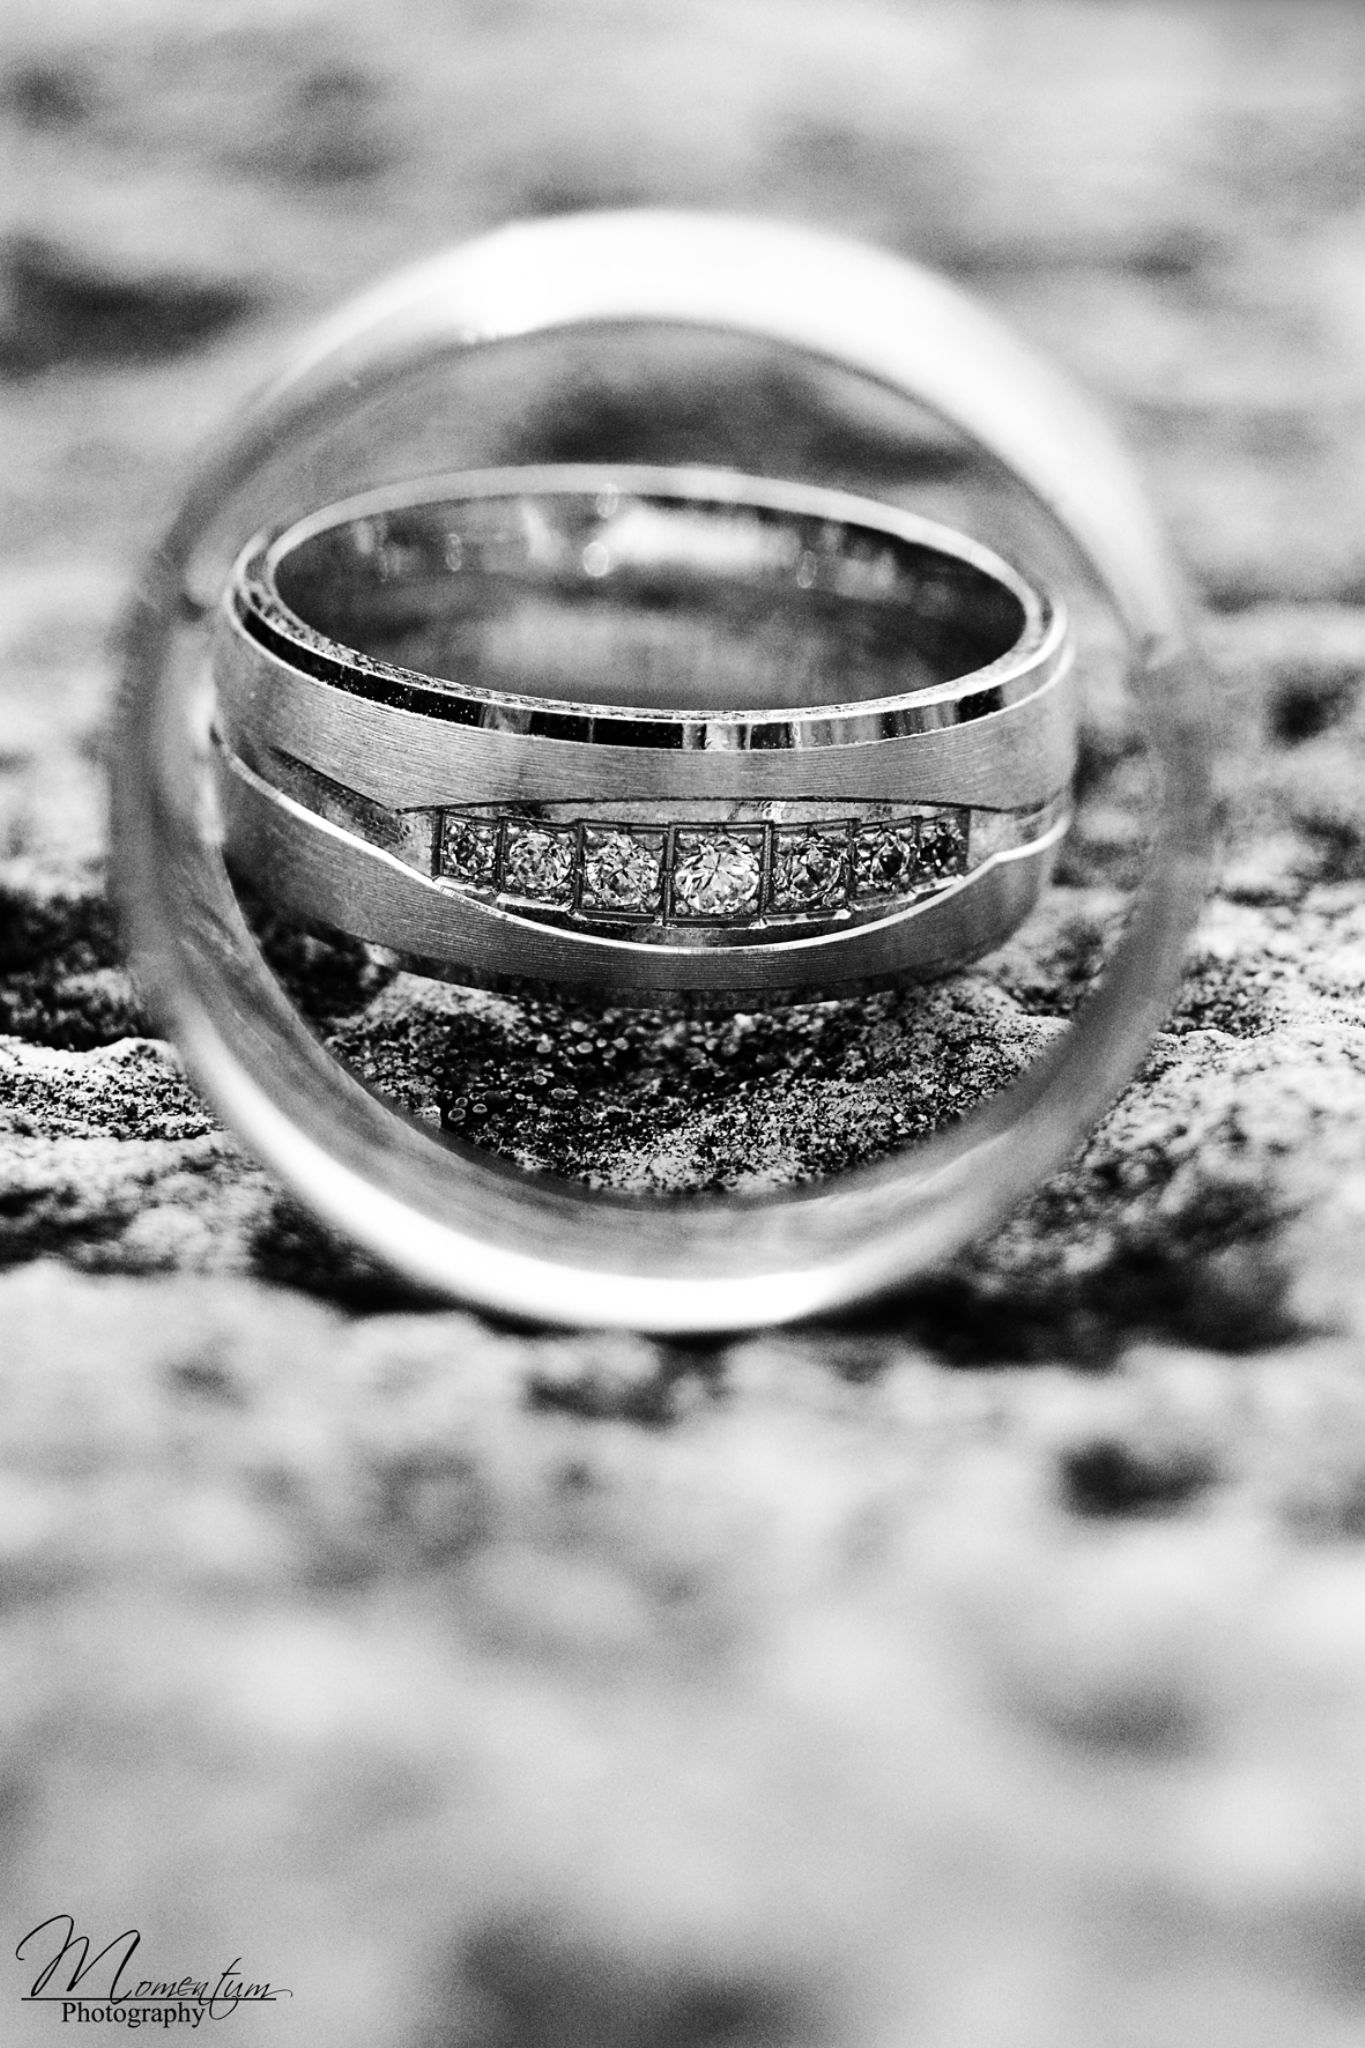 Rings by Momentum Photography